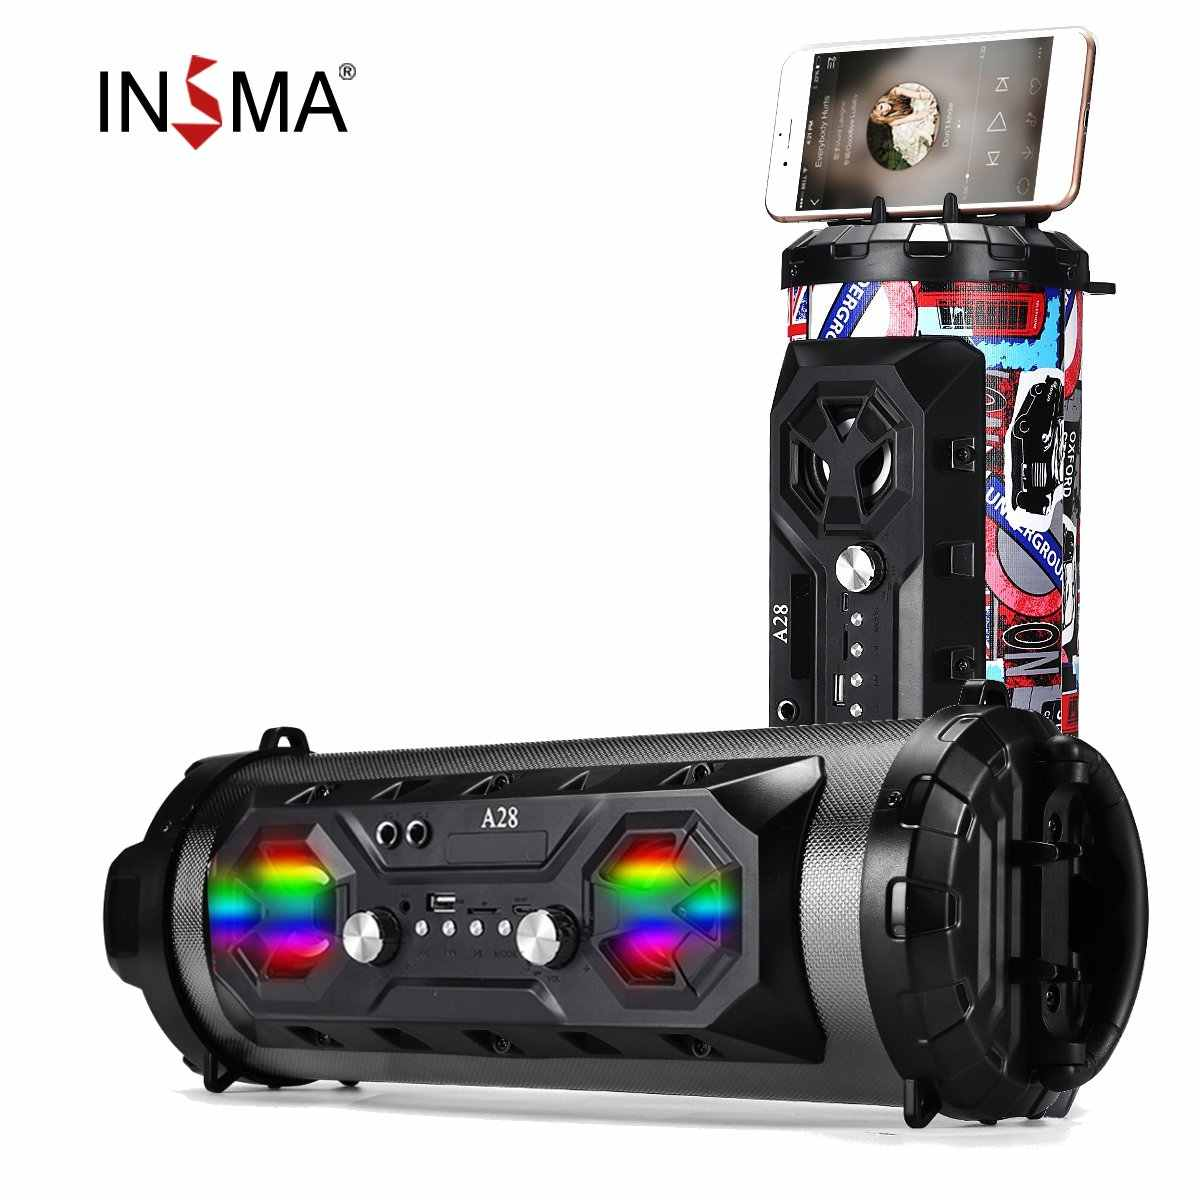 Insma HI FI Speaker Bluetooth Portable FM Radio Memindahkan KTV Wireless Surround Sound Subwoofer 20W Outdoor Speaker BOOMBOX Tf Usb